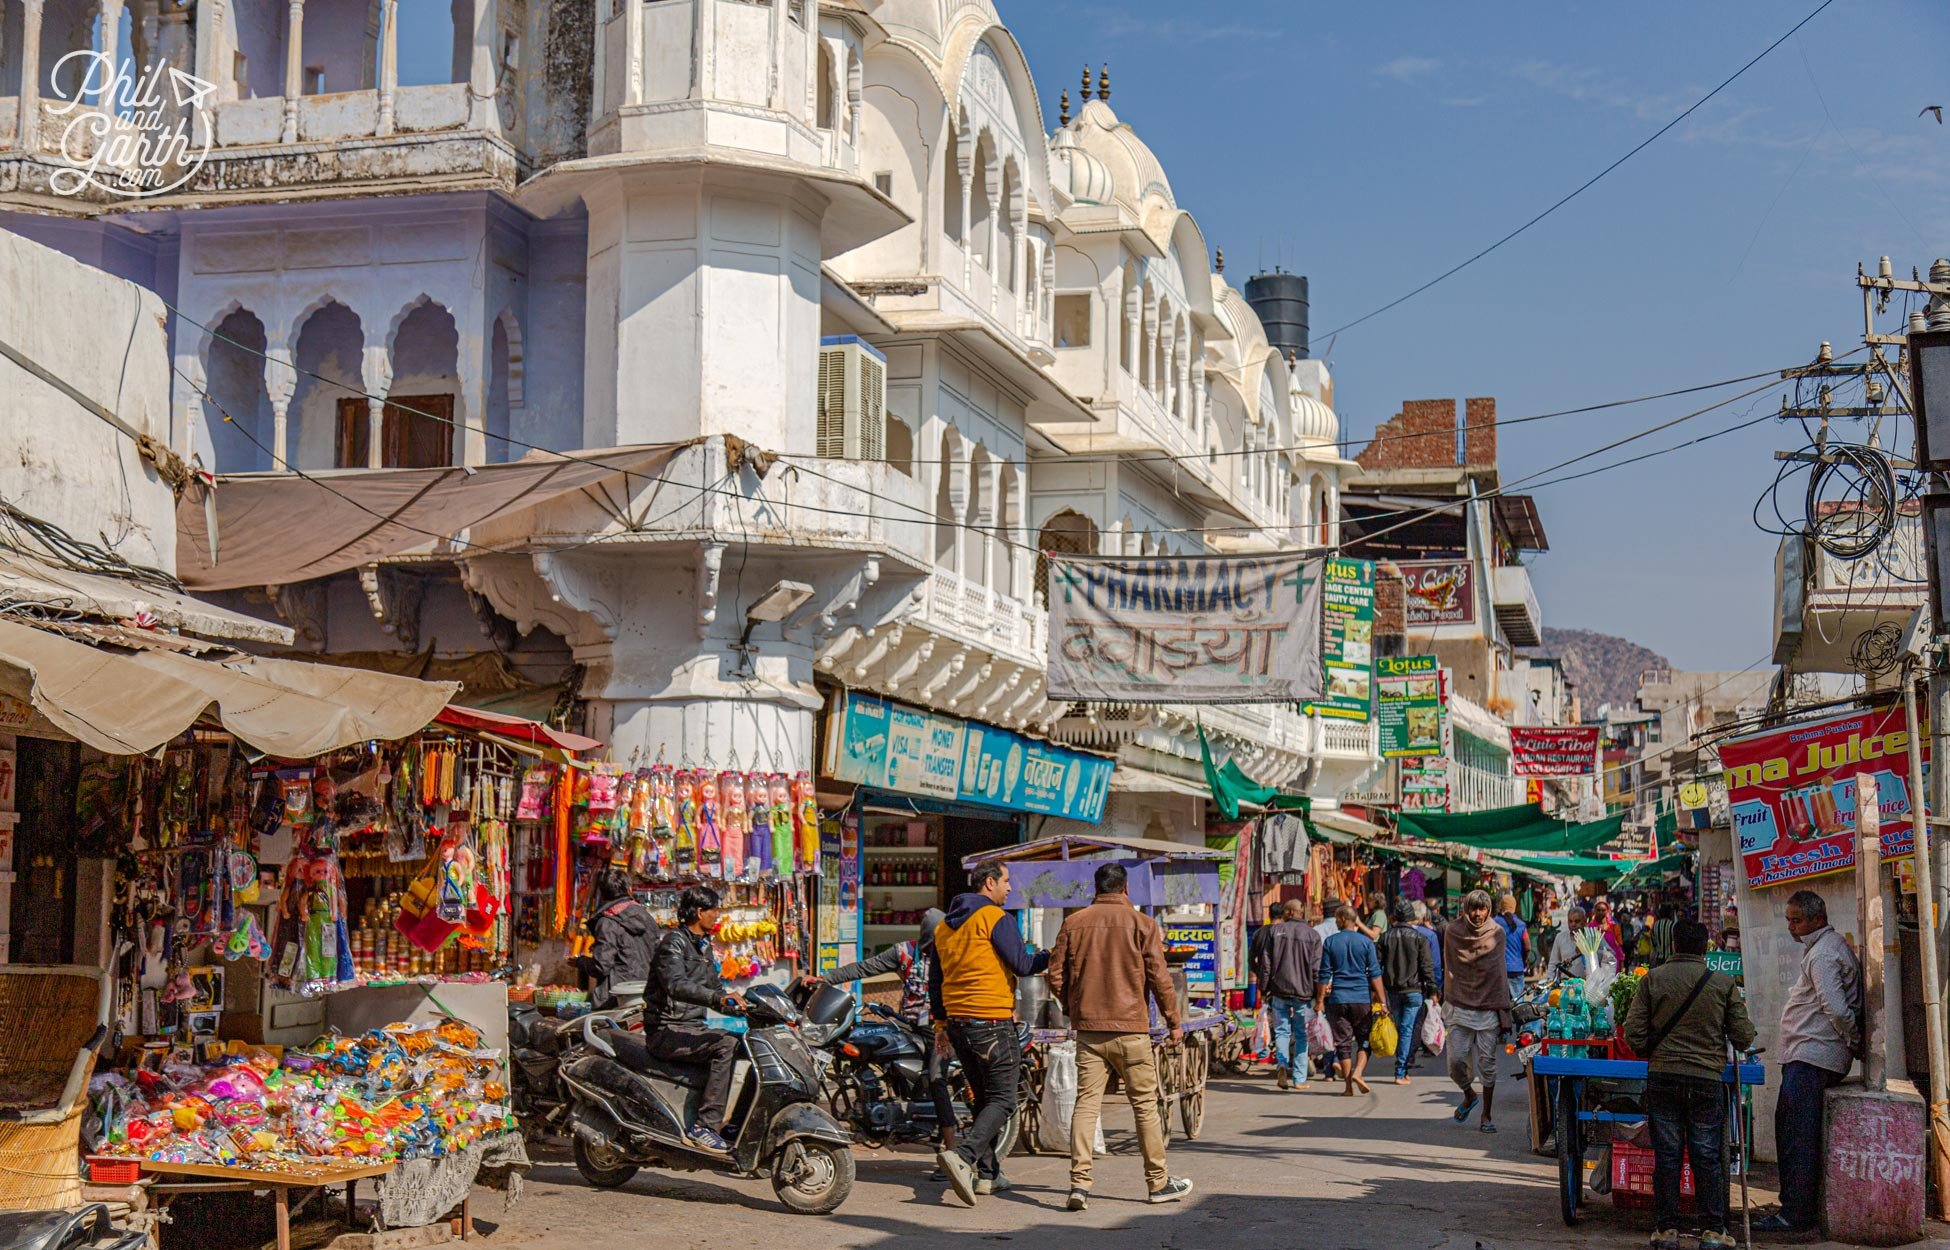 One of Pushkar's many bazaars, one of the best places to visit in Pushkar